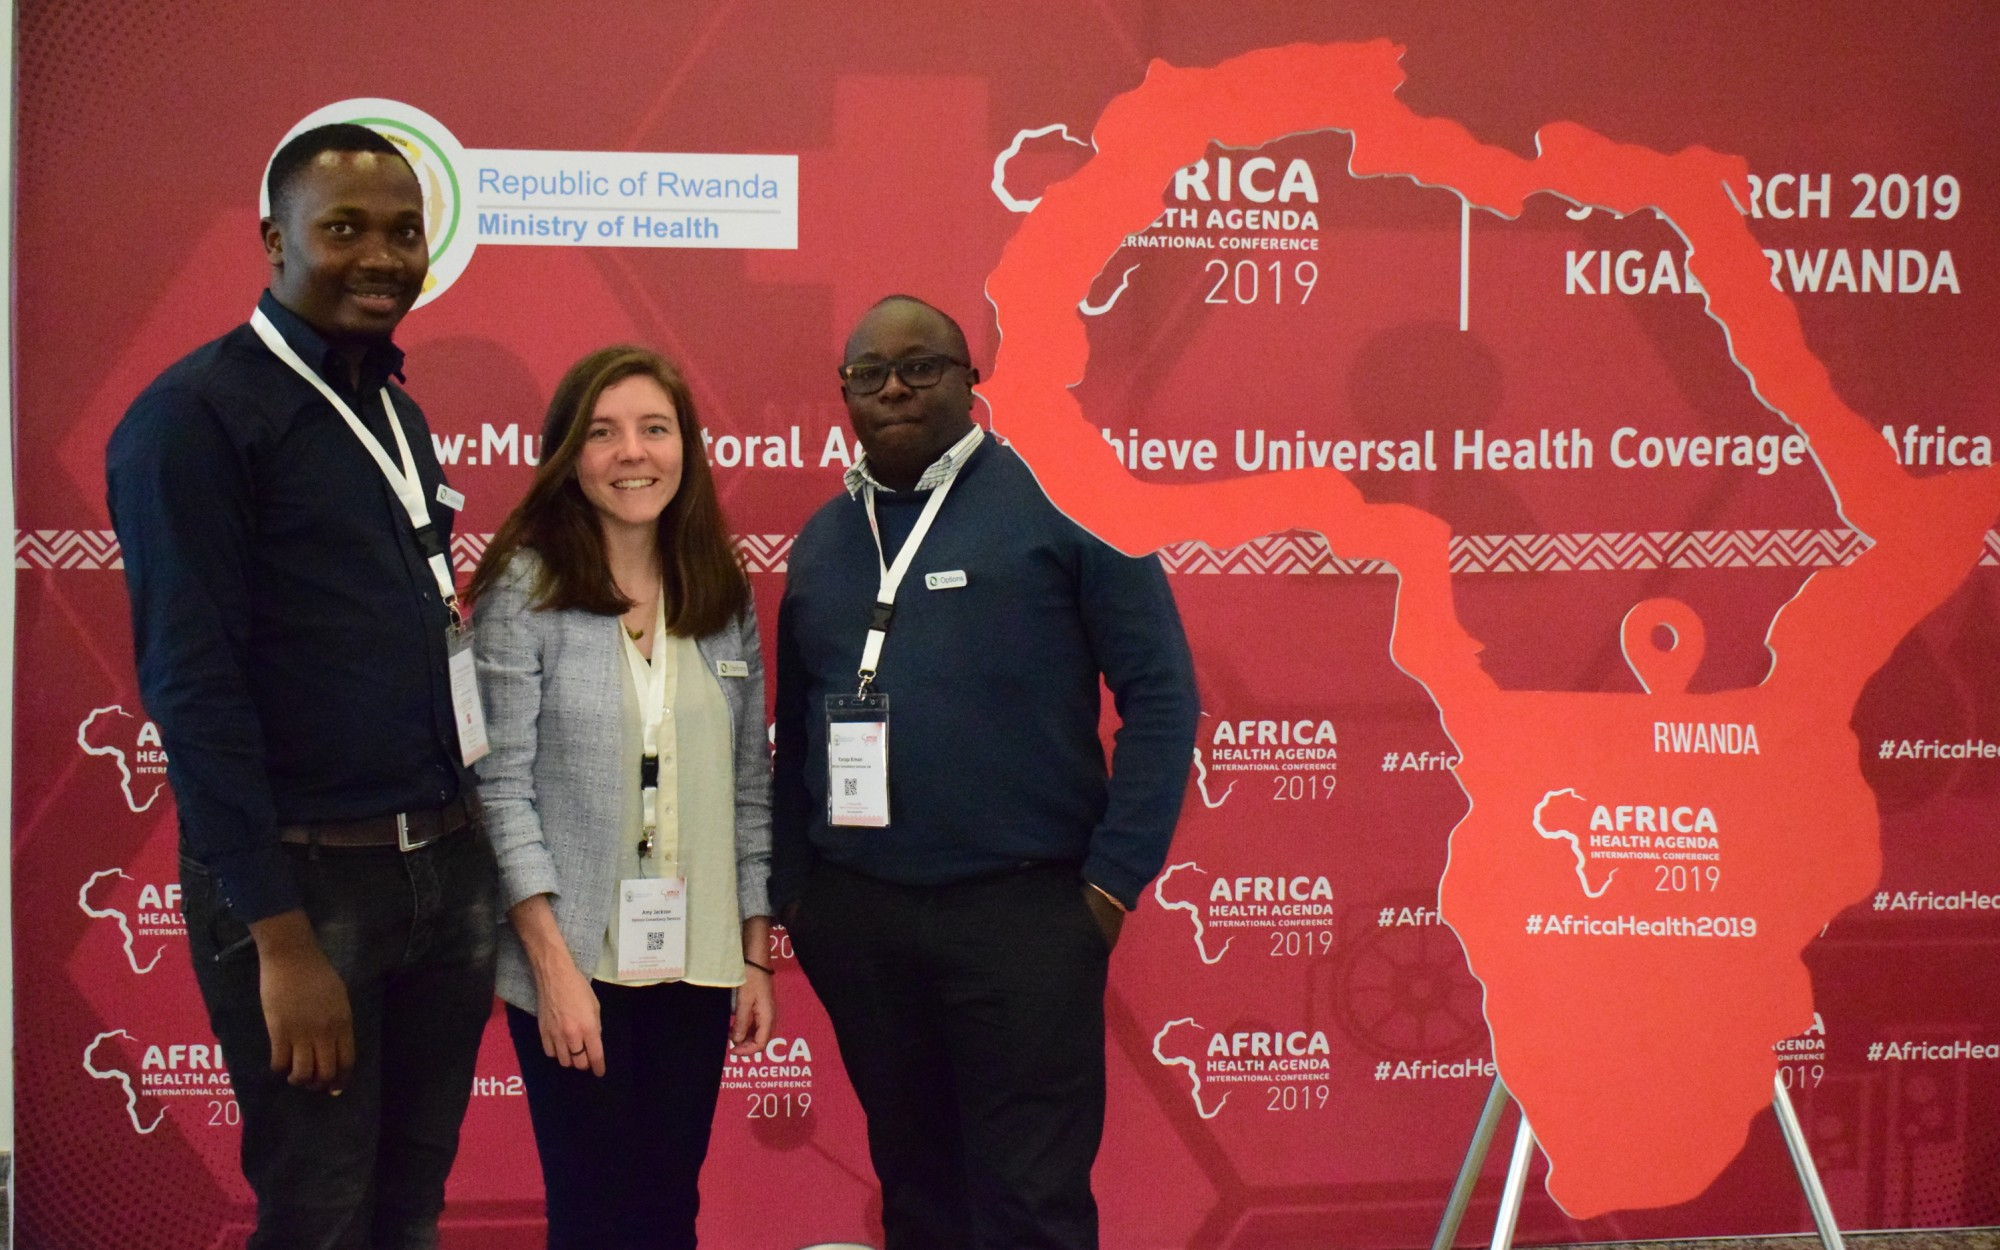 Building on the Universal Health Coverage movement across Africa